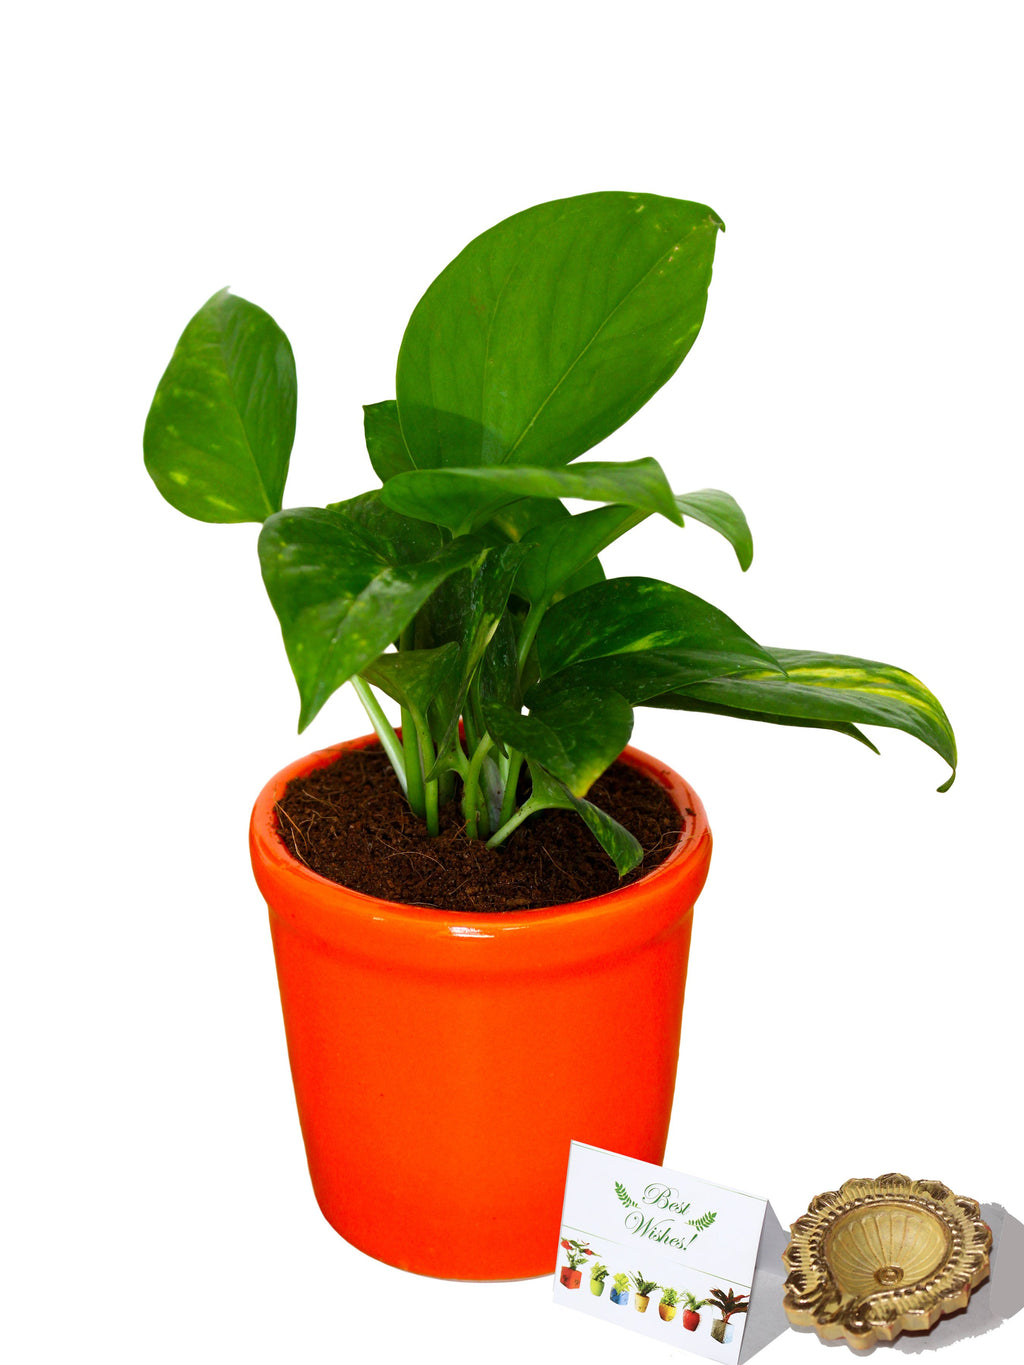 Rolling Nature Diwali Gift Combo of Good Luck Air Purifying Money Plant in Orange Jar Ceramic Pot